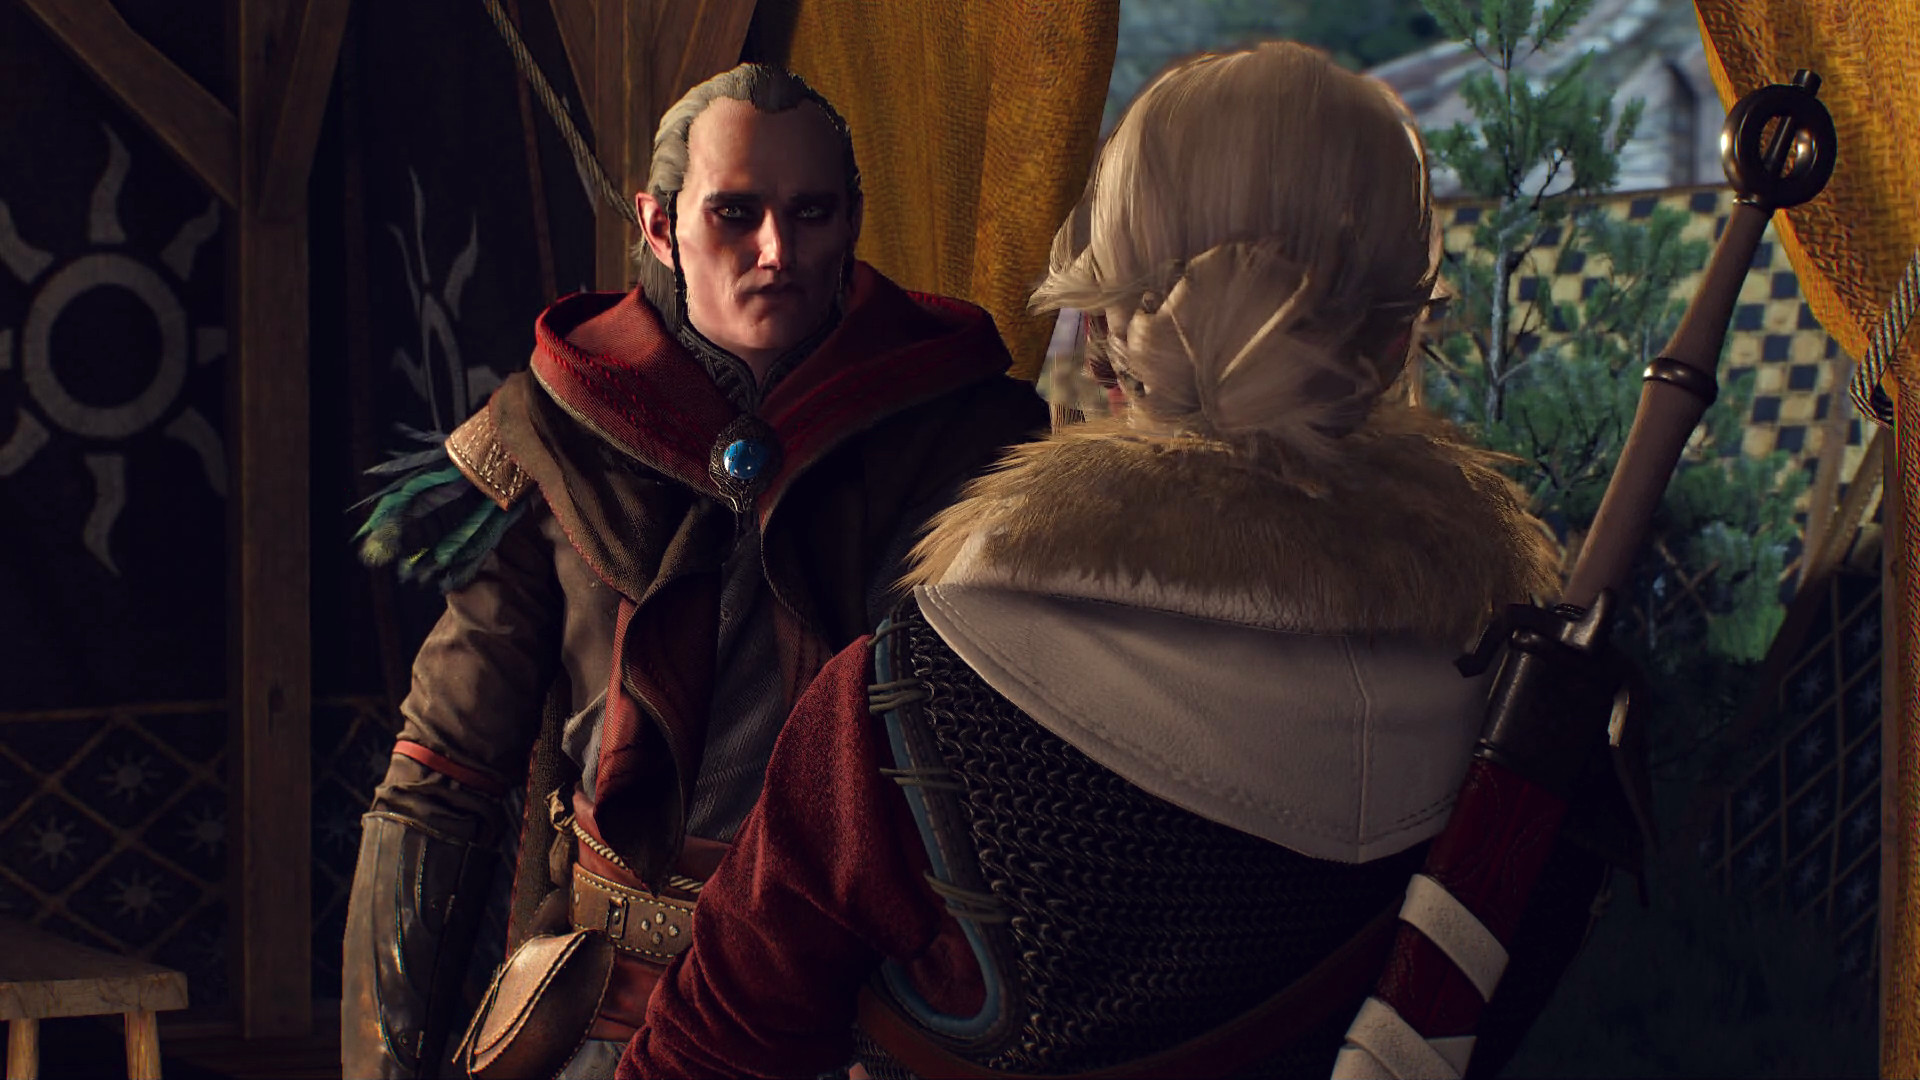 Avallac'h and Ciri arguing, like usual